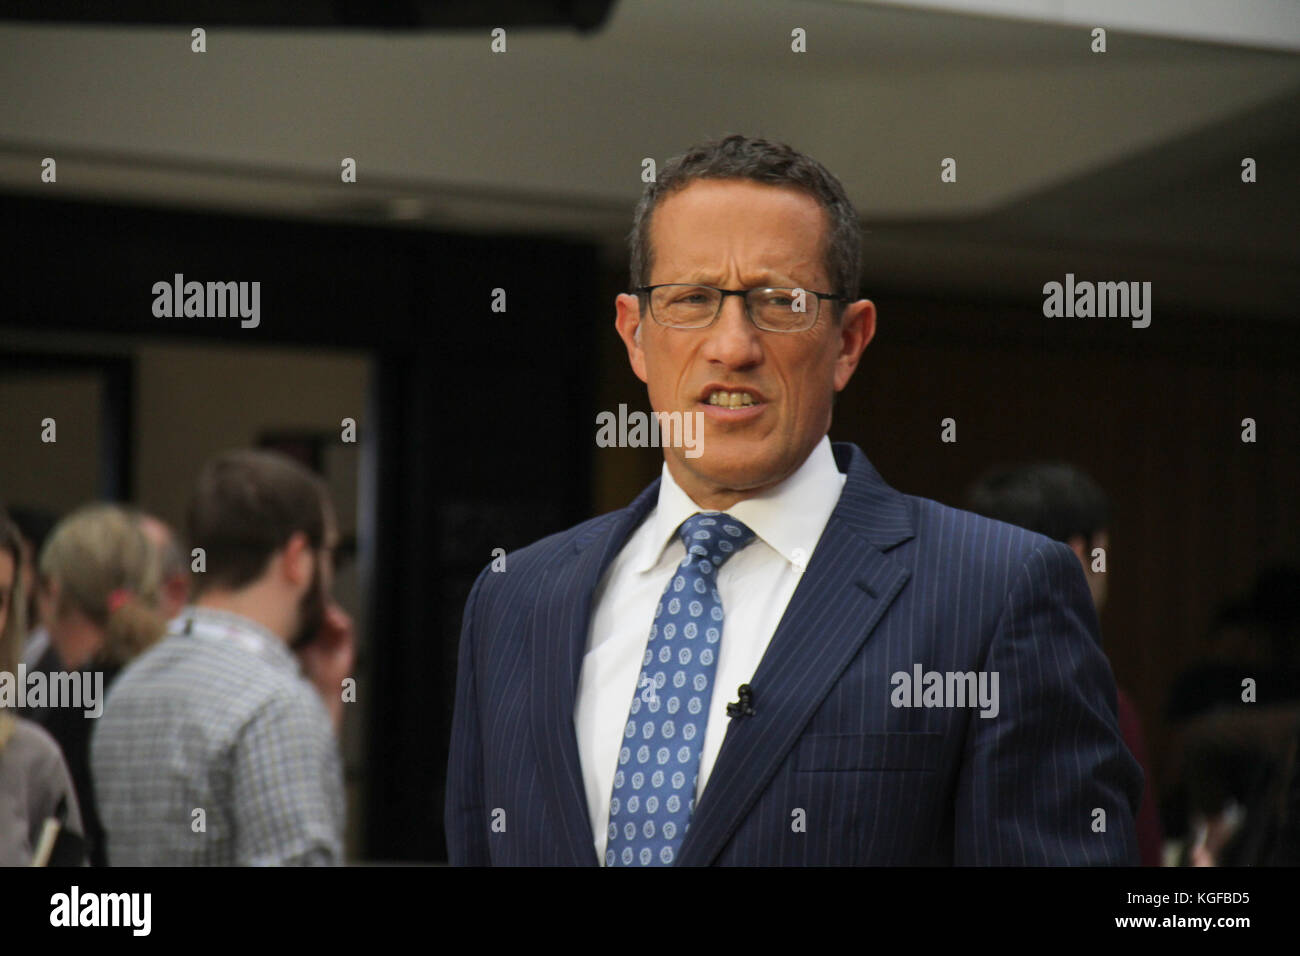 London, UK. 7th Nov, 2017. CNN's Bussines anchor Richard Quest seen ahead of a live broadcast at the annual - Stock Image